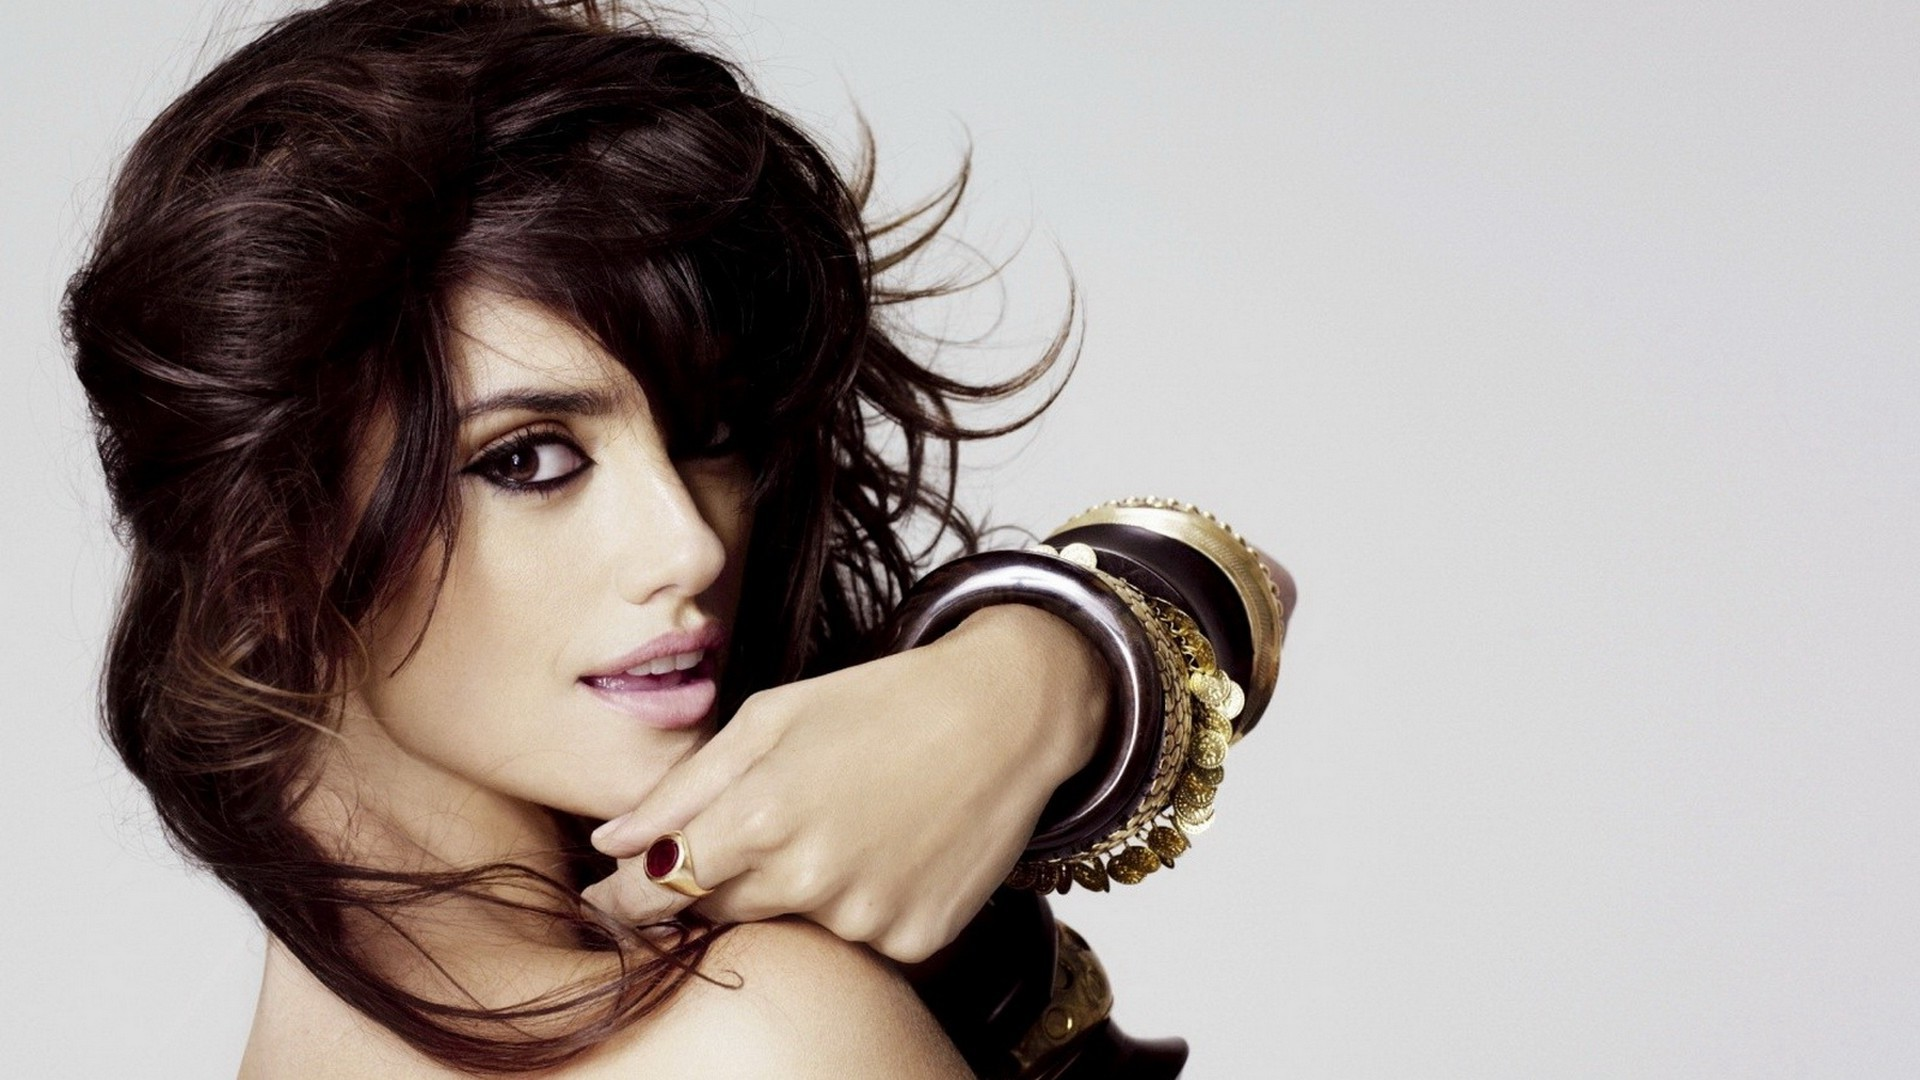 Penelope Cruz widescreen for desktop